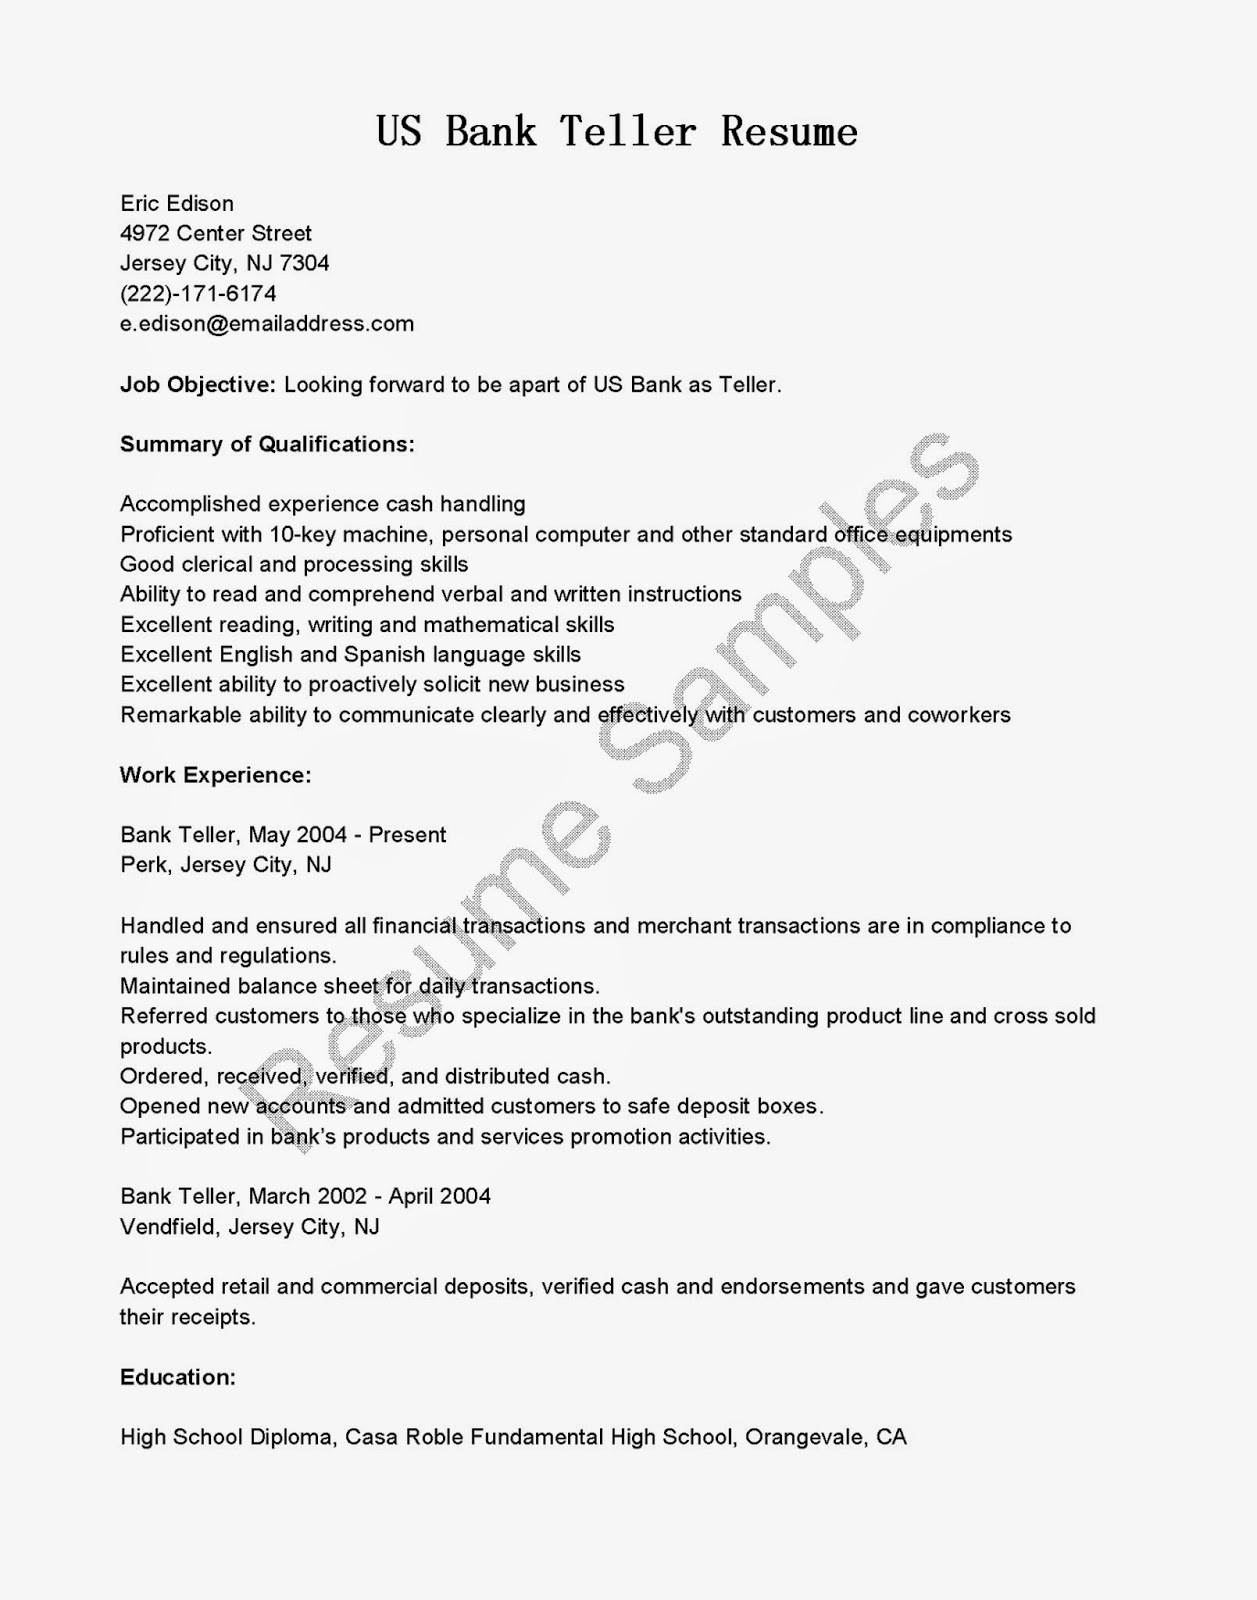 Resume Examples Bank Teller Resume Cover Letter Bank Teller No Experience